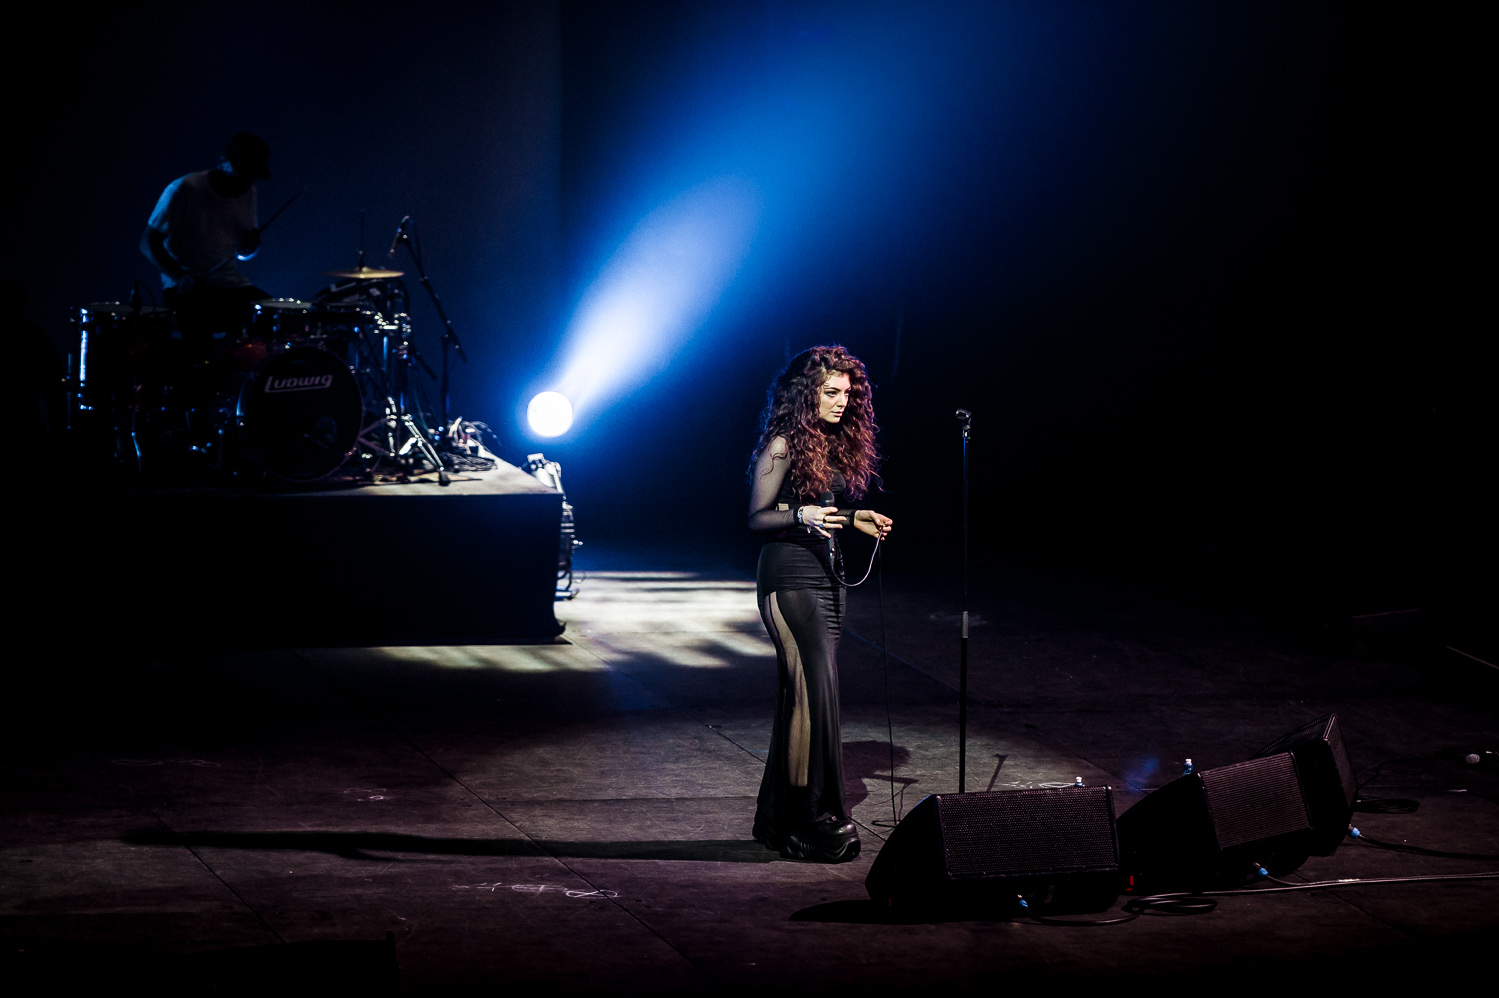 Lorde iHeart Radio_016_photo_©2013 Steve Dykes.jpg